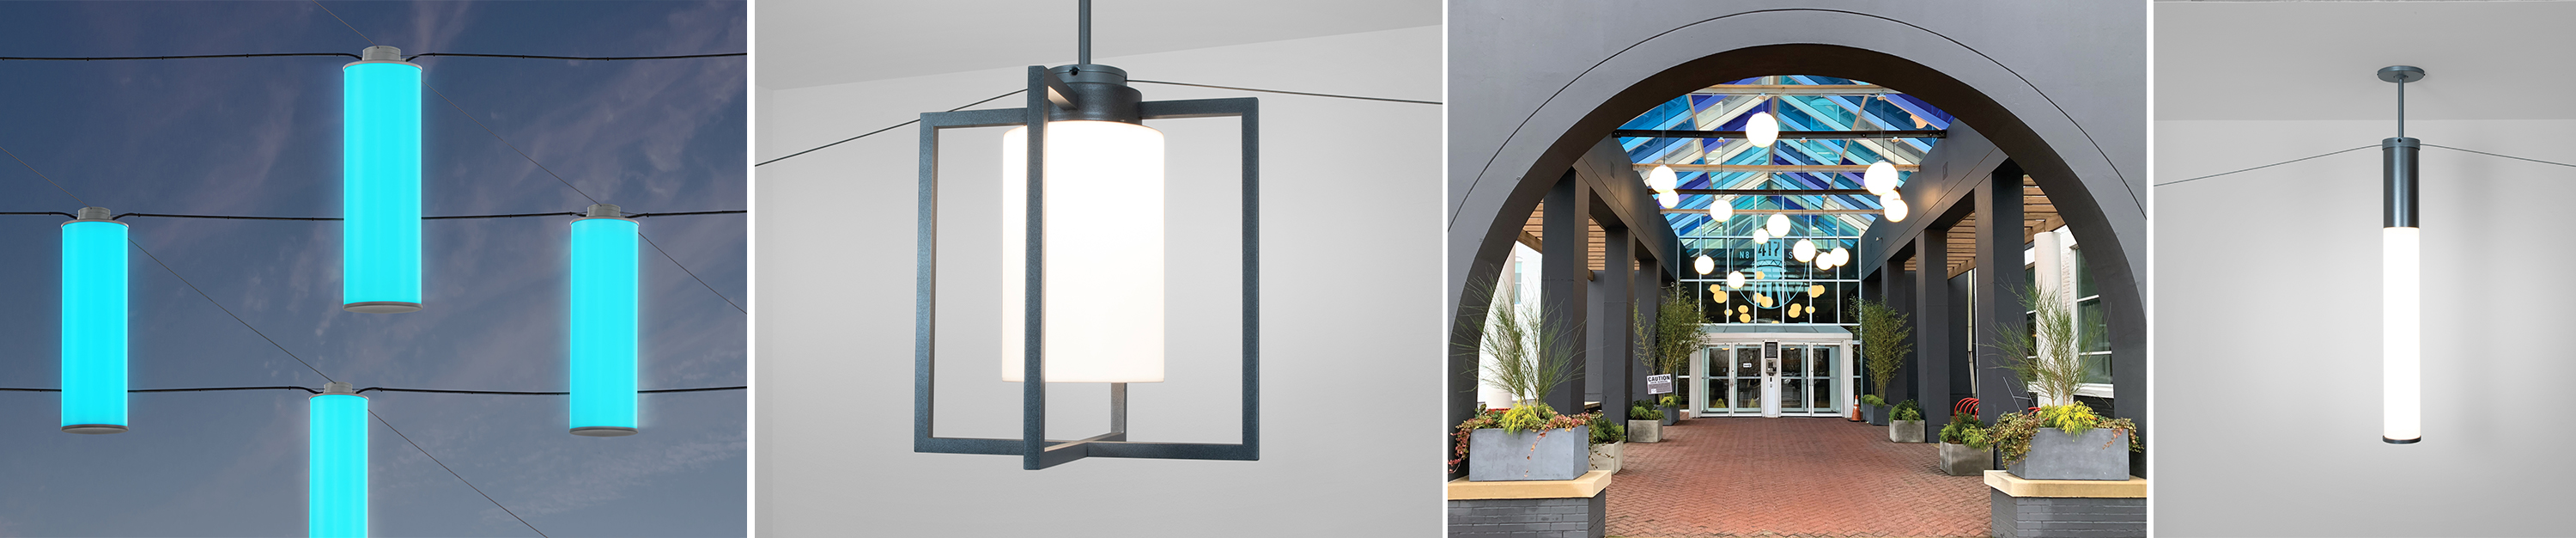 Outdoor pendant banner with several different luminaires and applications